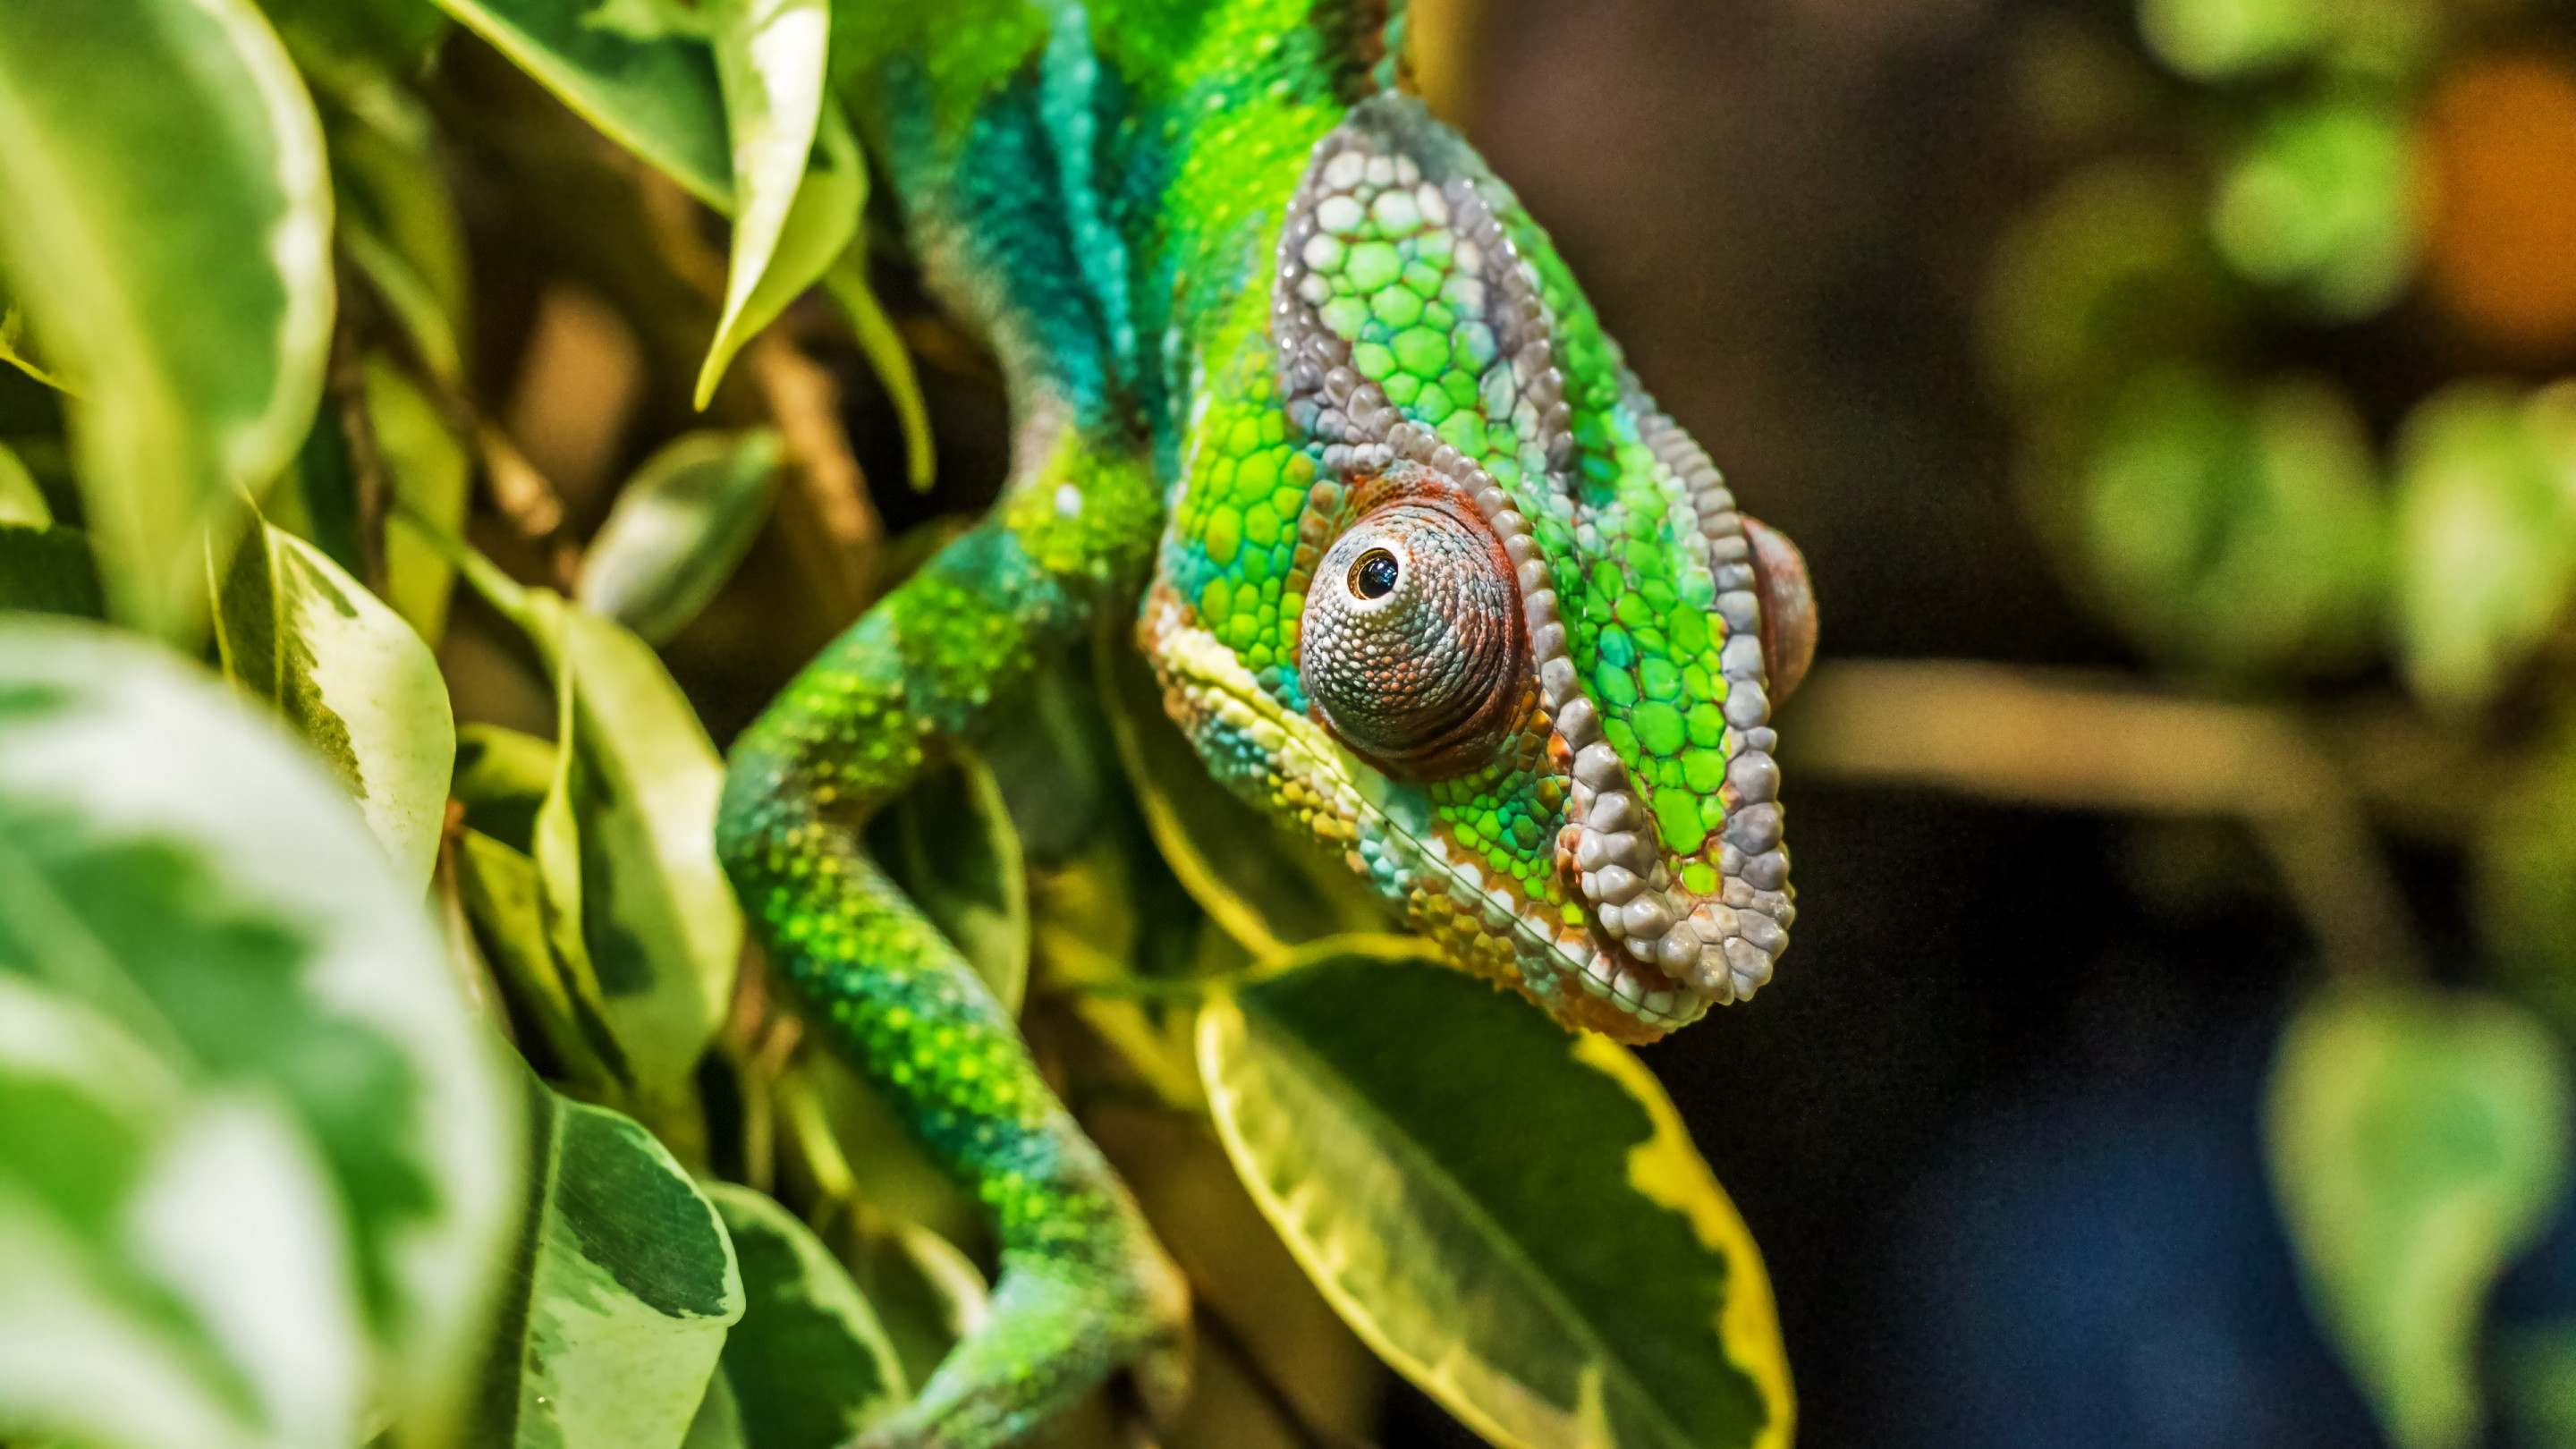 Panther chameleon reptile wallpaper 2880x1620